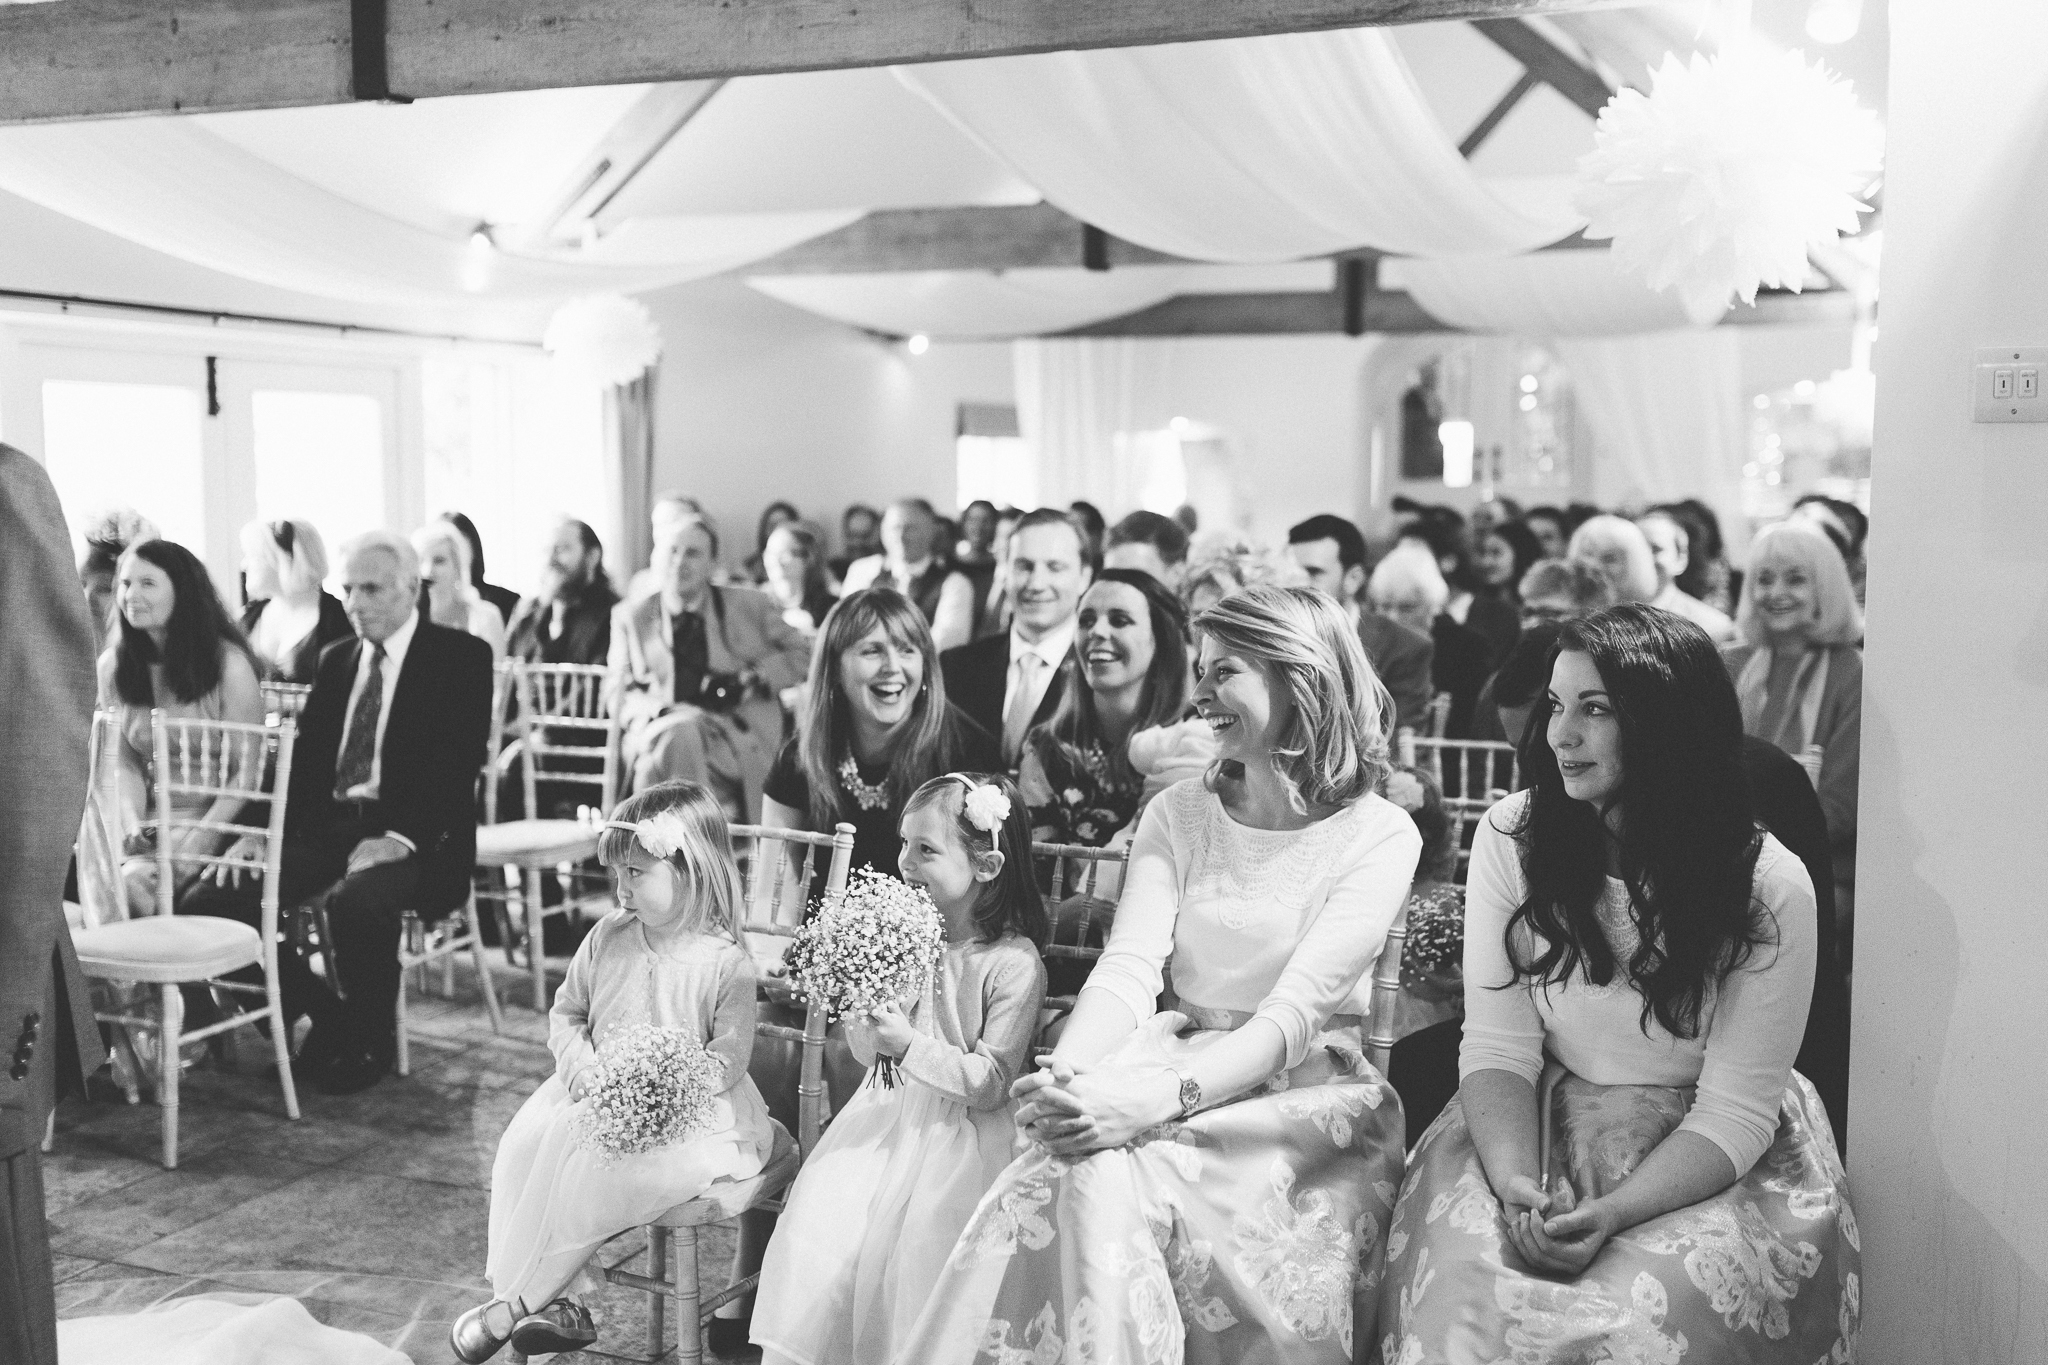 Farbridge Barn Wedding Creative Alternative Photo Chichester Joanna Nicole Photography (29 of 133).jpg